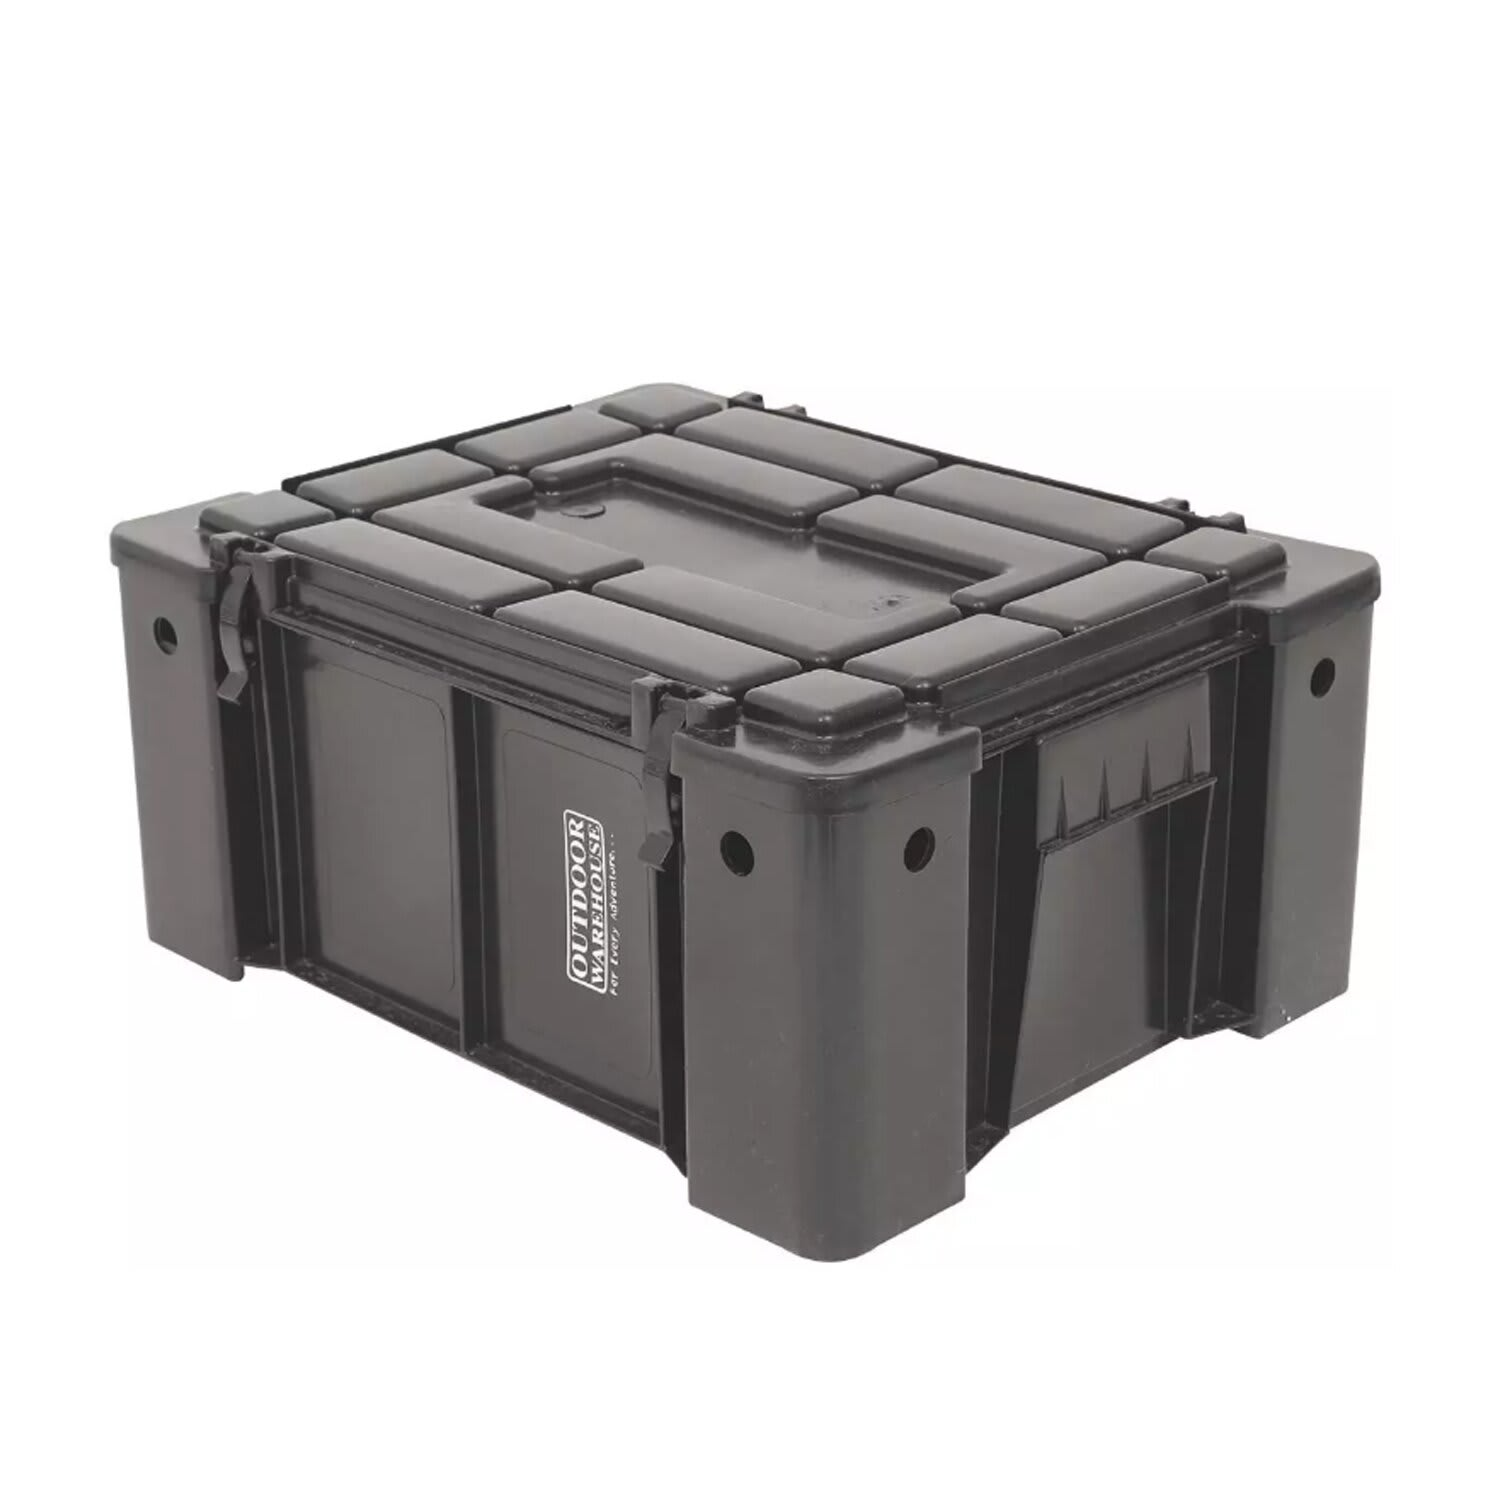 Outdoor Warehouse Ammo Box with a Low Lid